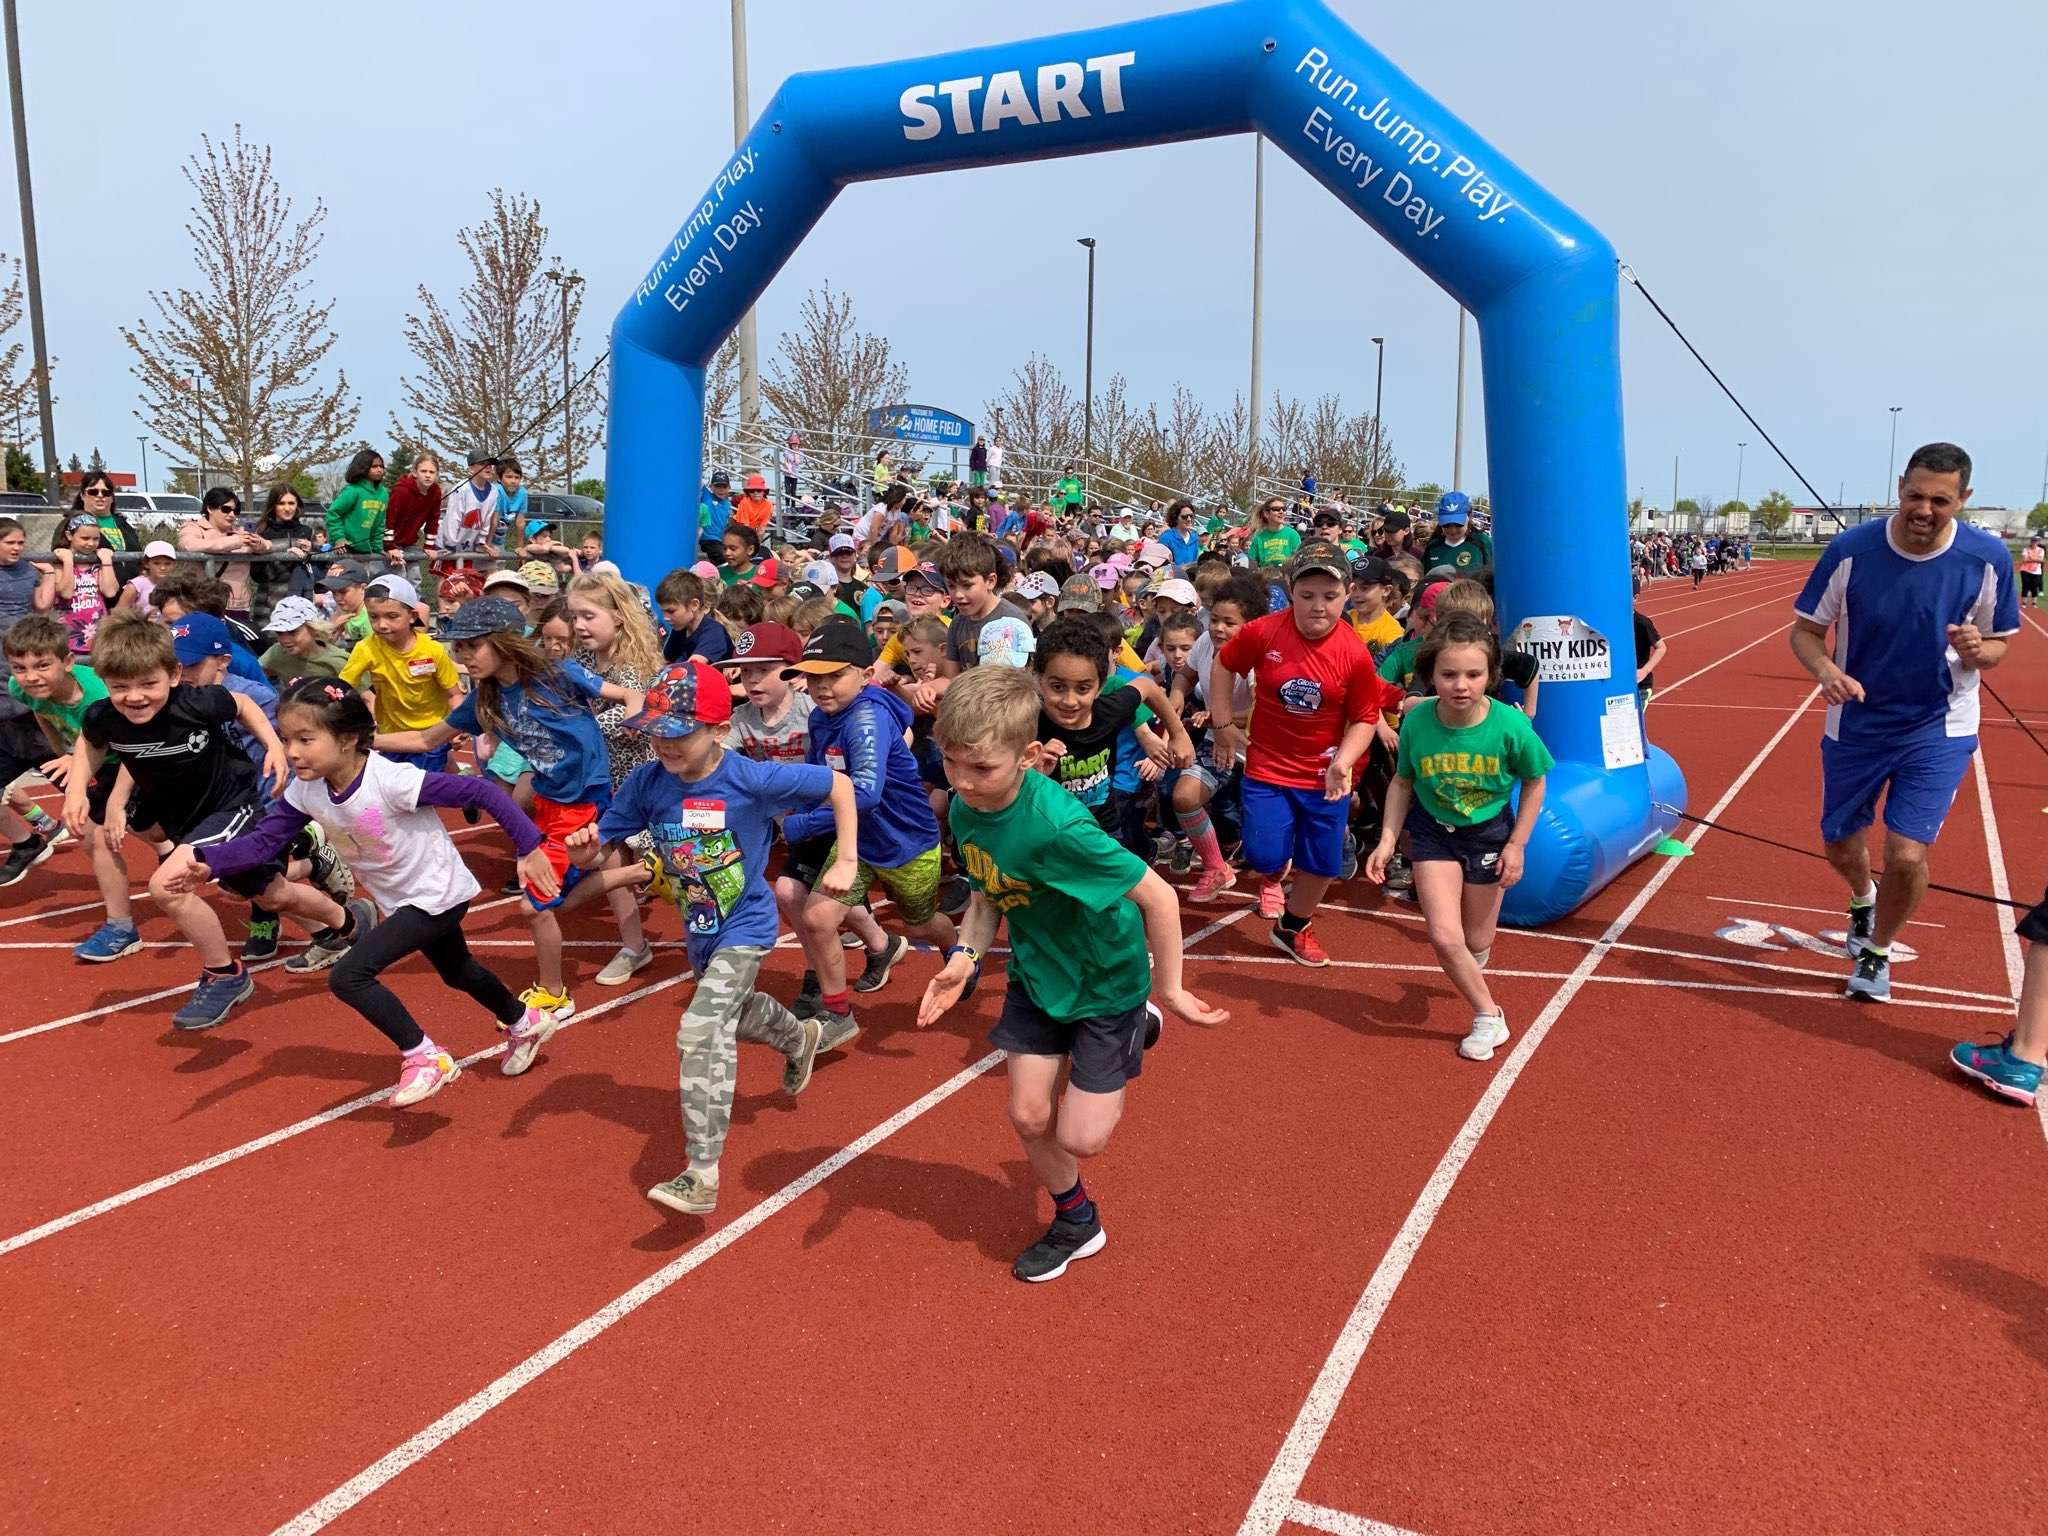 Marathon Club sees over 2,200 students reach their personal running goal